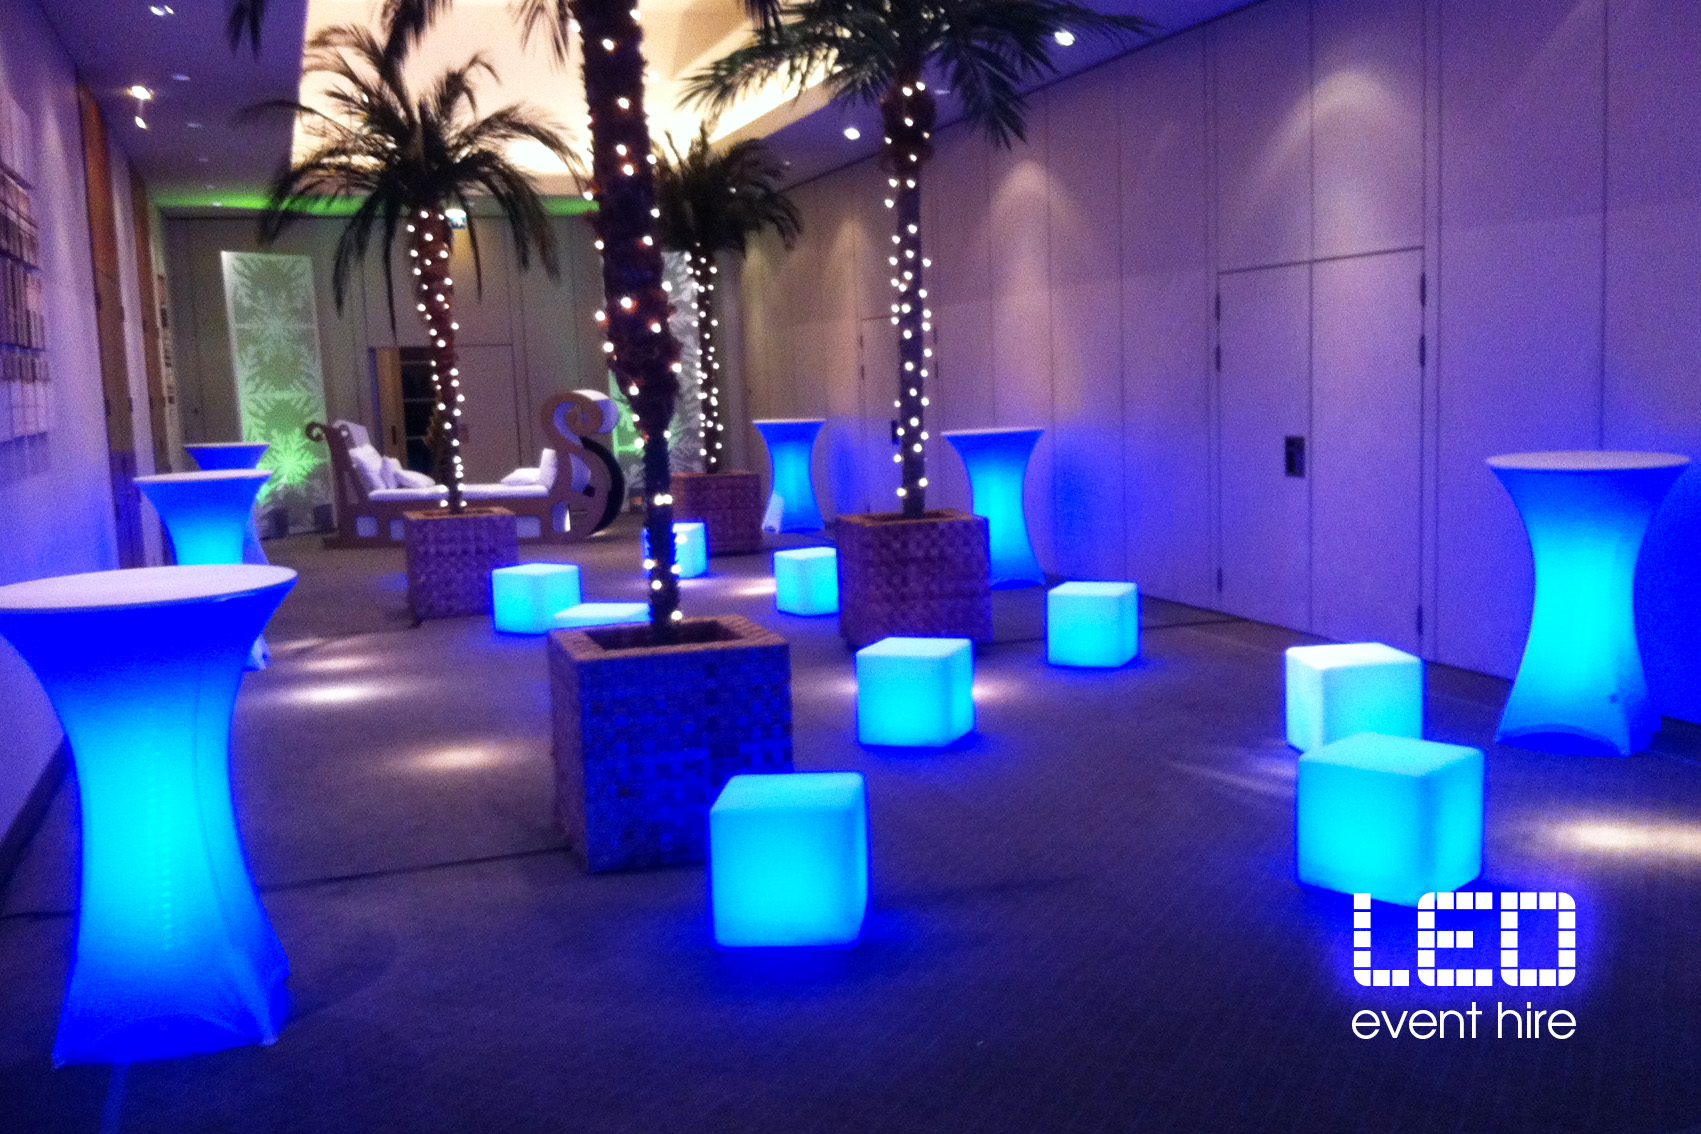 Led event hire - Home decor rental collection ...